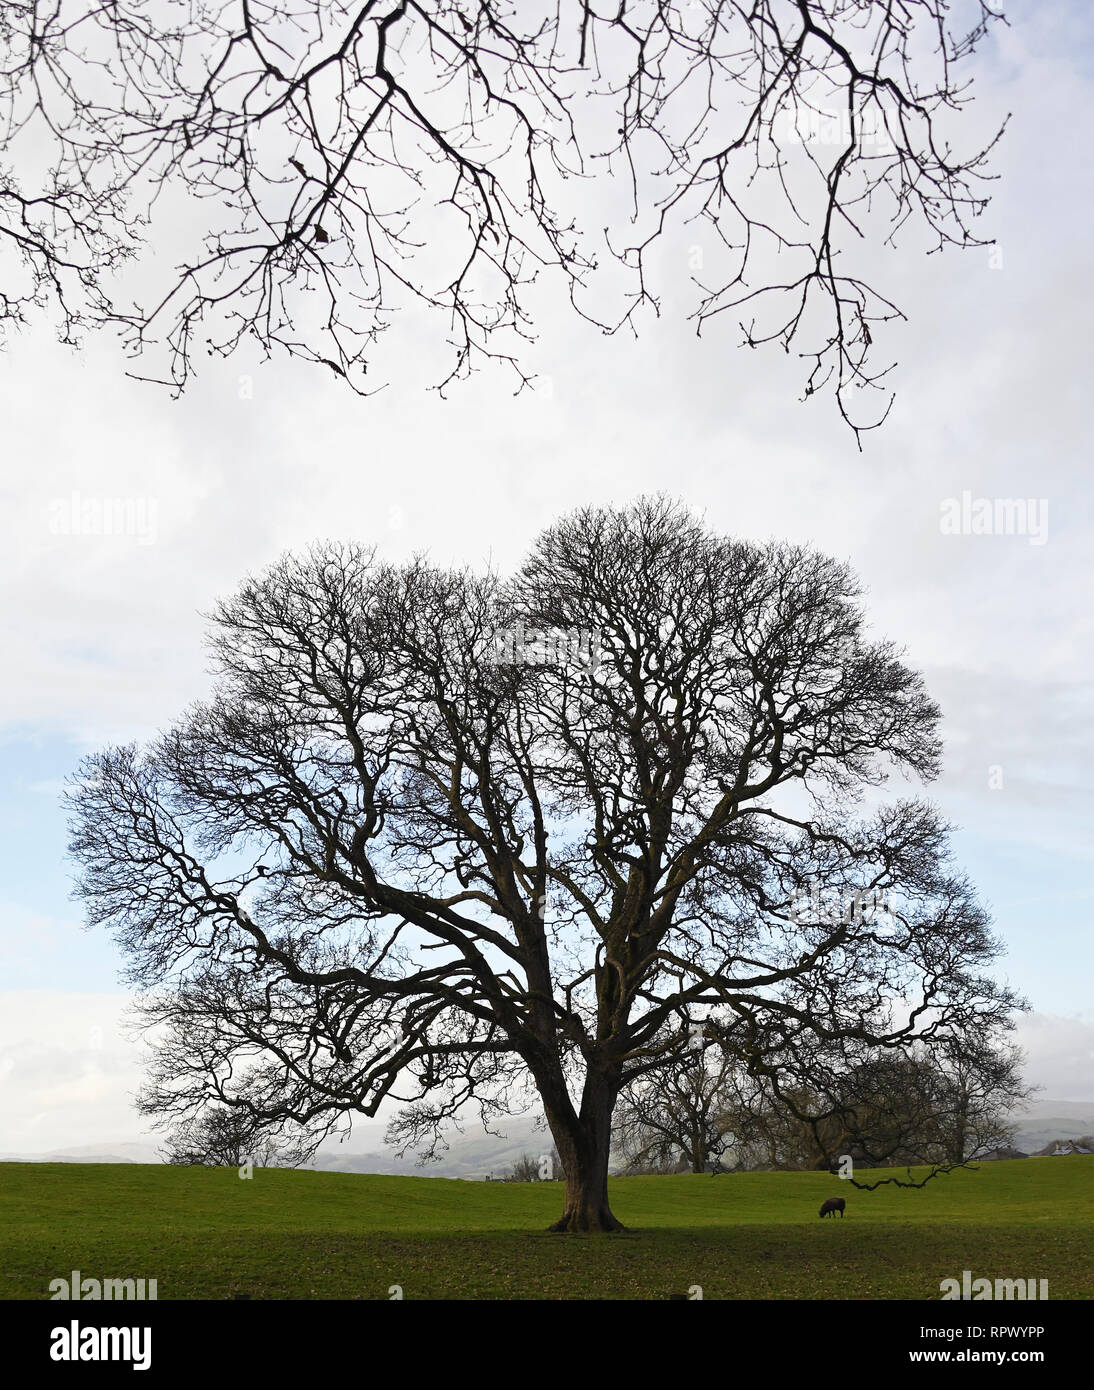 Oak tree in winter with sheep. Castle Green, Kendal, Cumbria, England, United Kingdom, Europe. Stock Photo